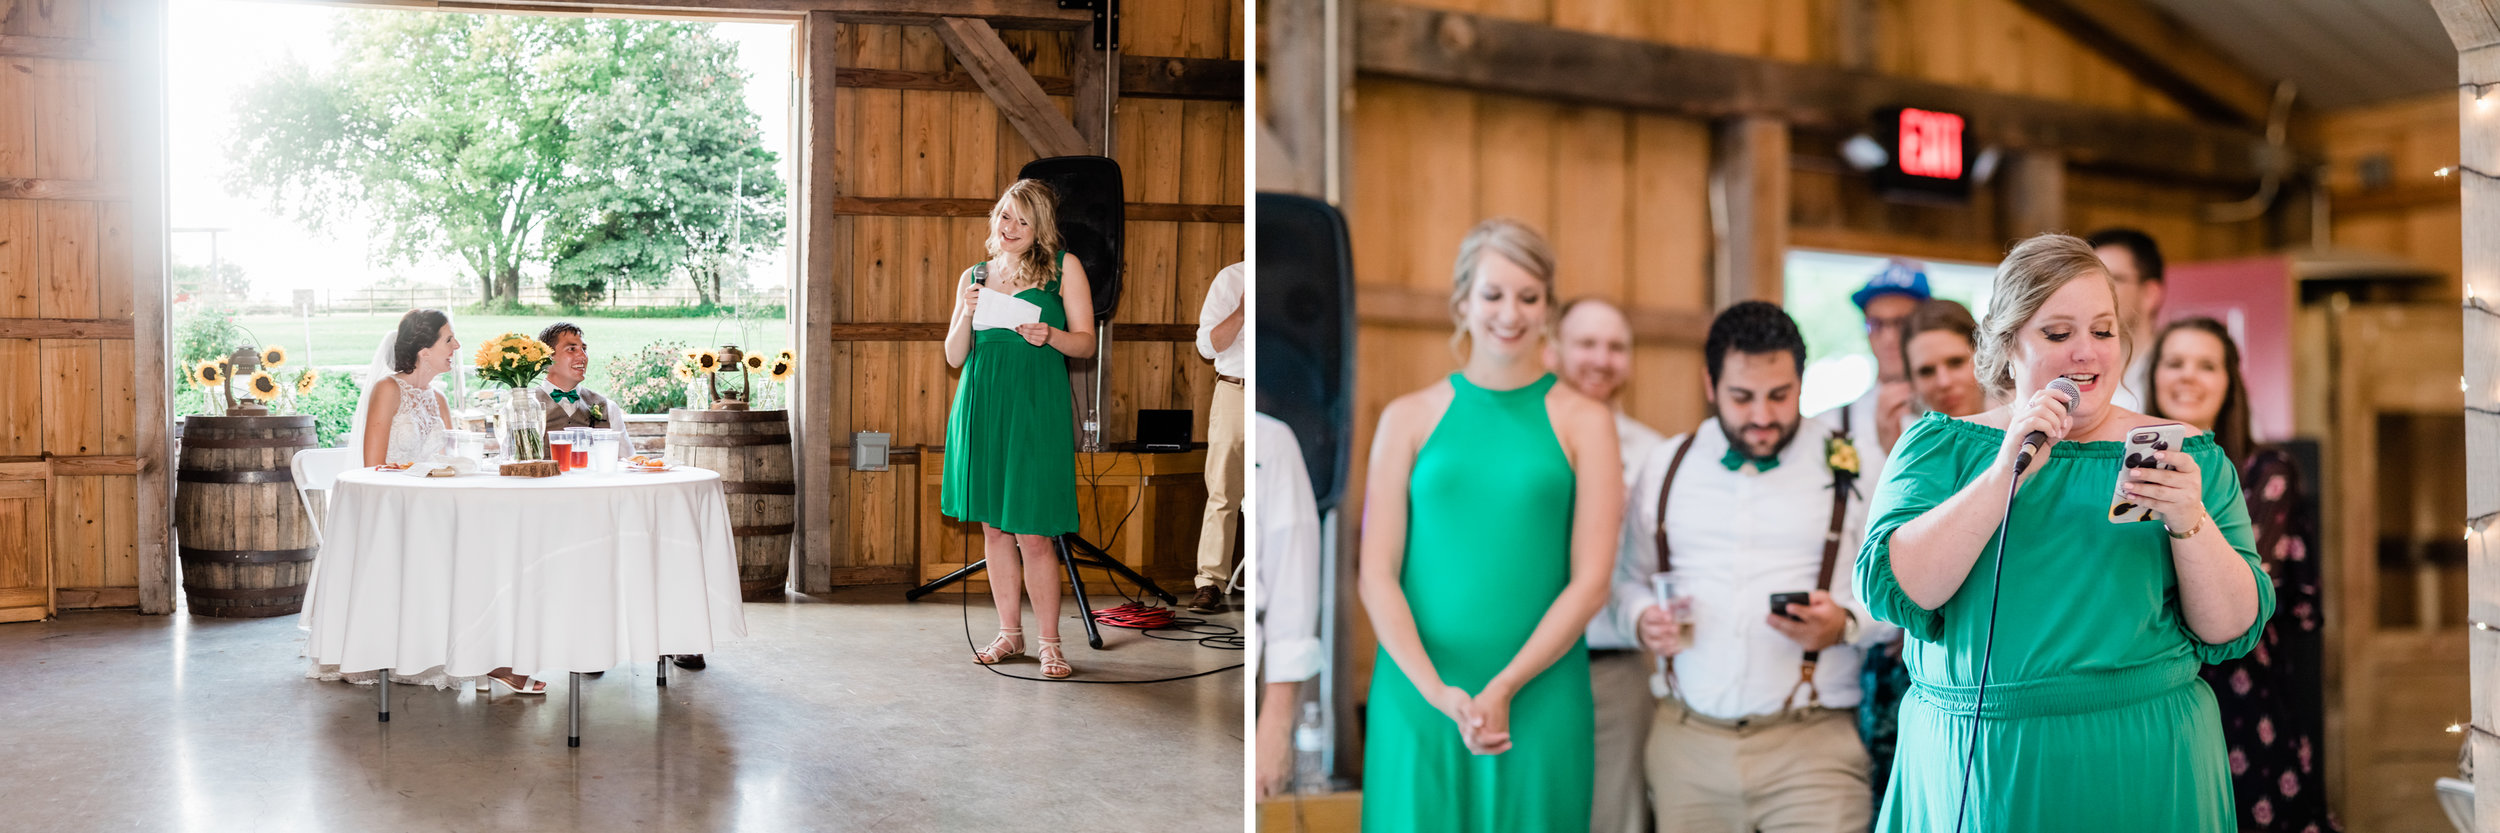 Bentonville Wedding Photographer Holland Barn 16.jpg